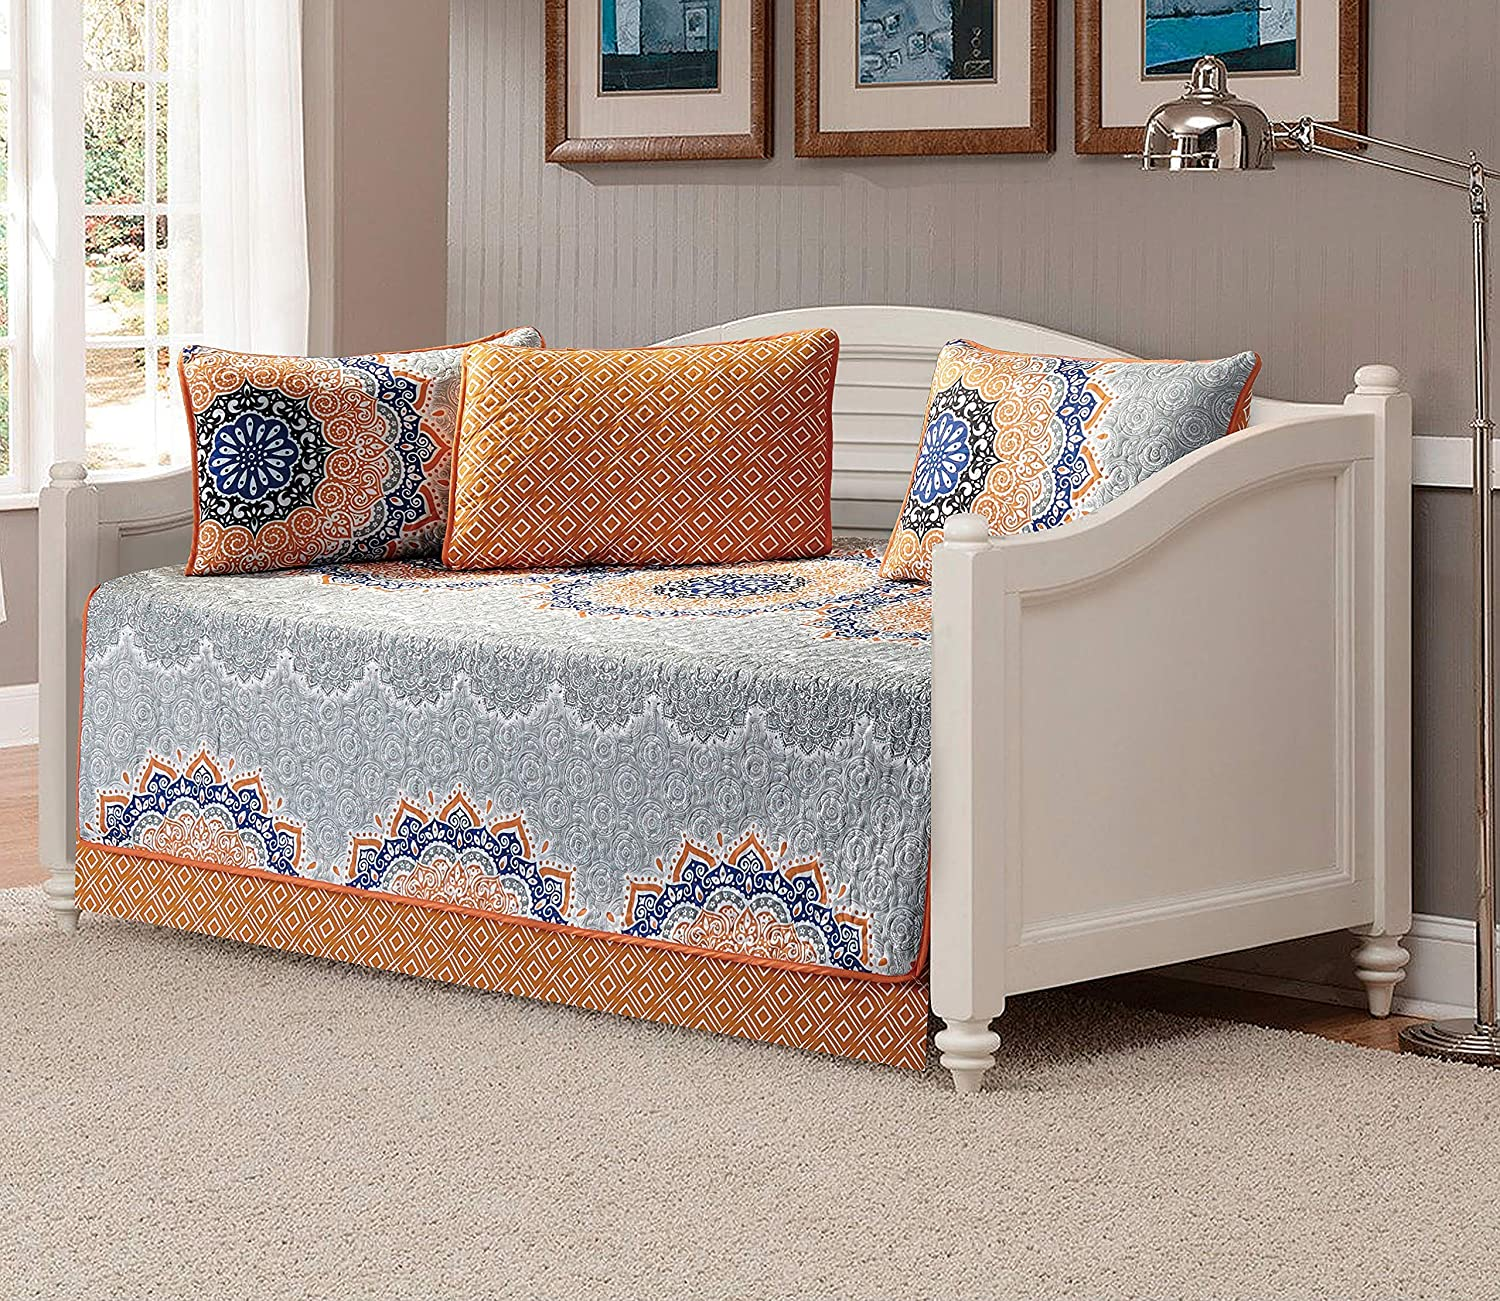 Fancy Collection 5pc Day Bed Quilted Coverlet Daybed Set New (Oslo Orange)